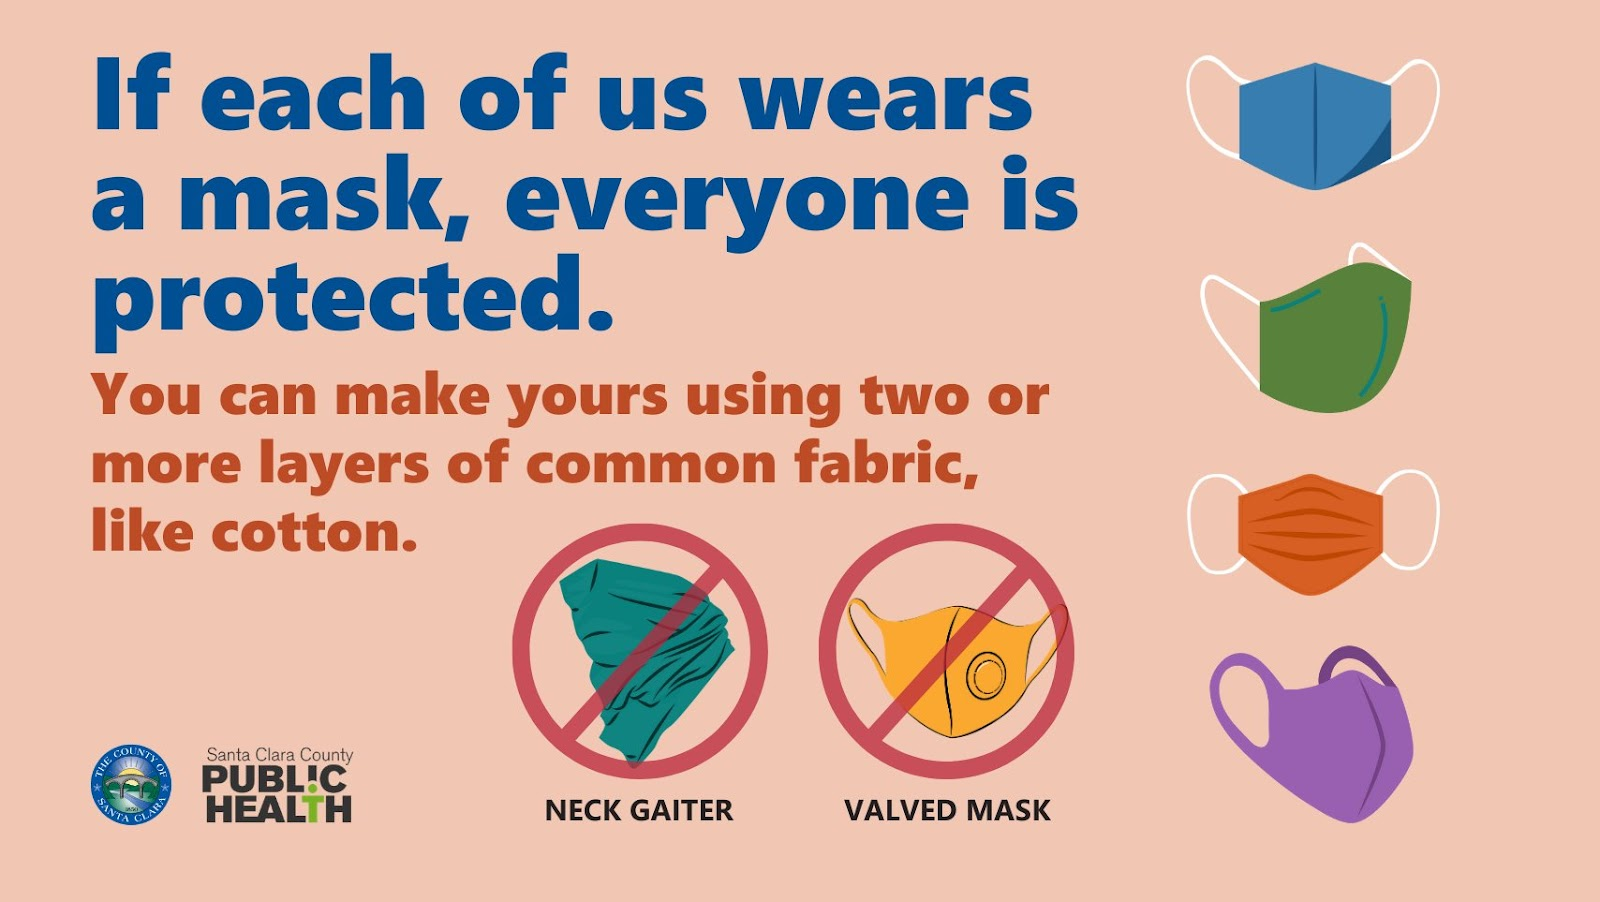 If each of us wears a mask, everyone is protected.